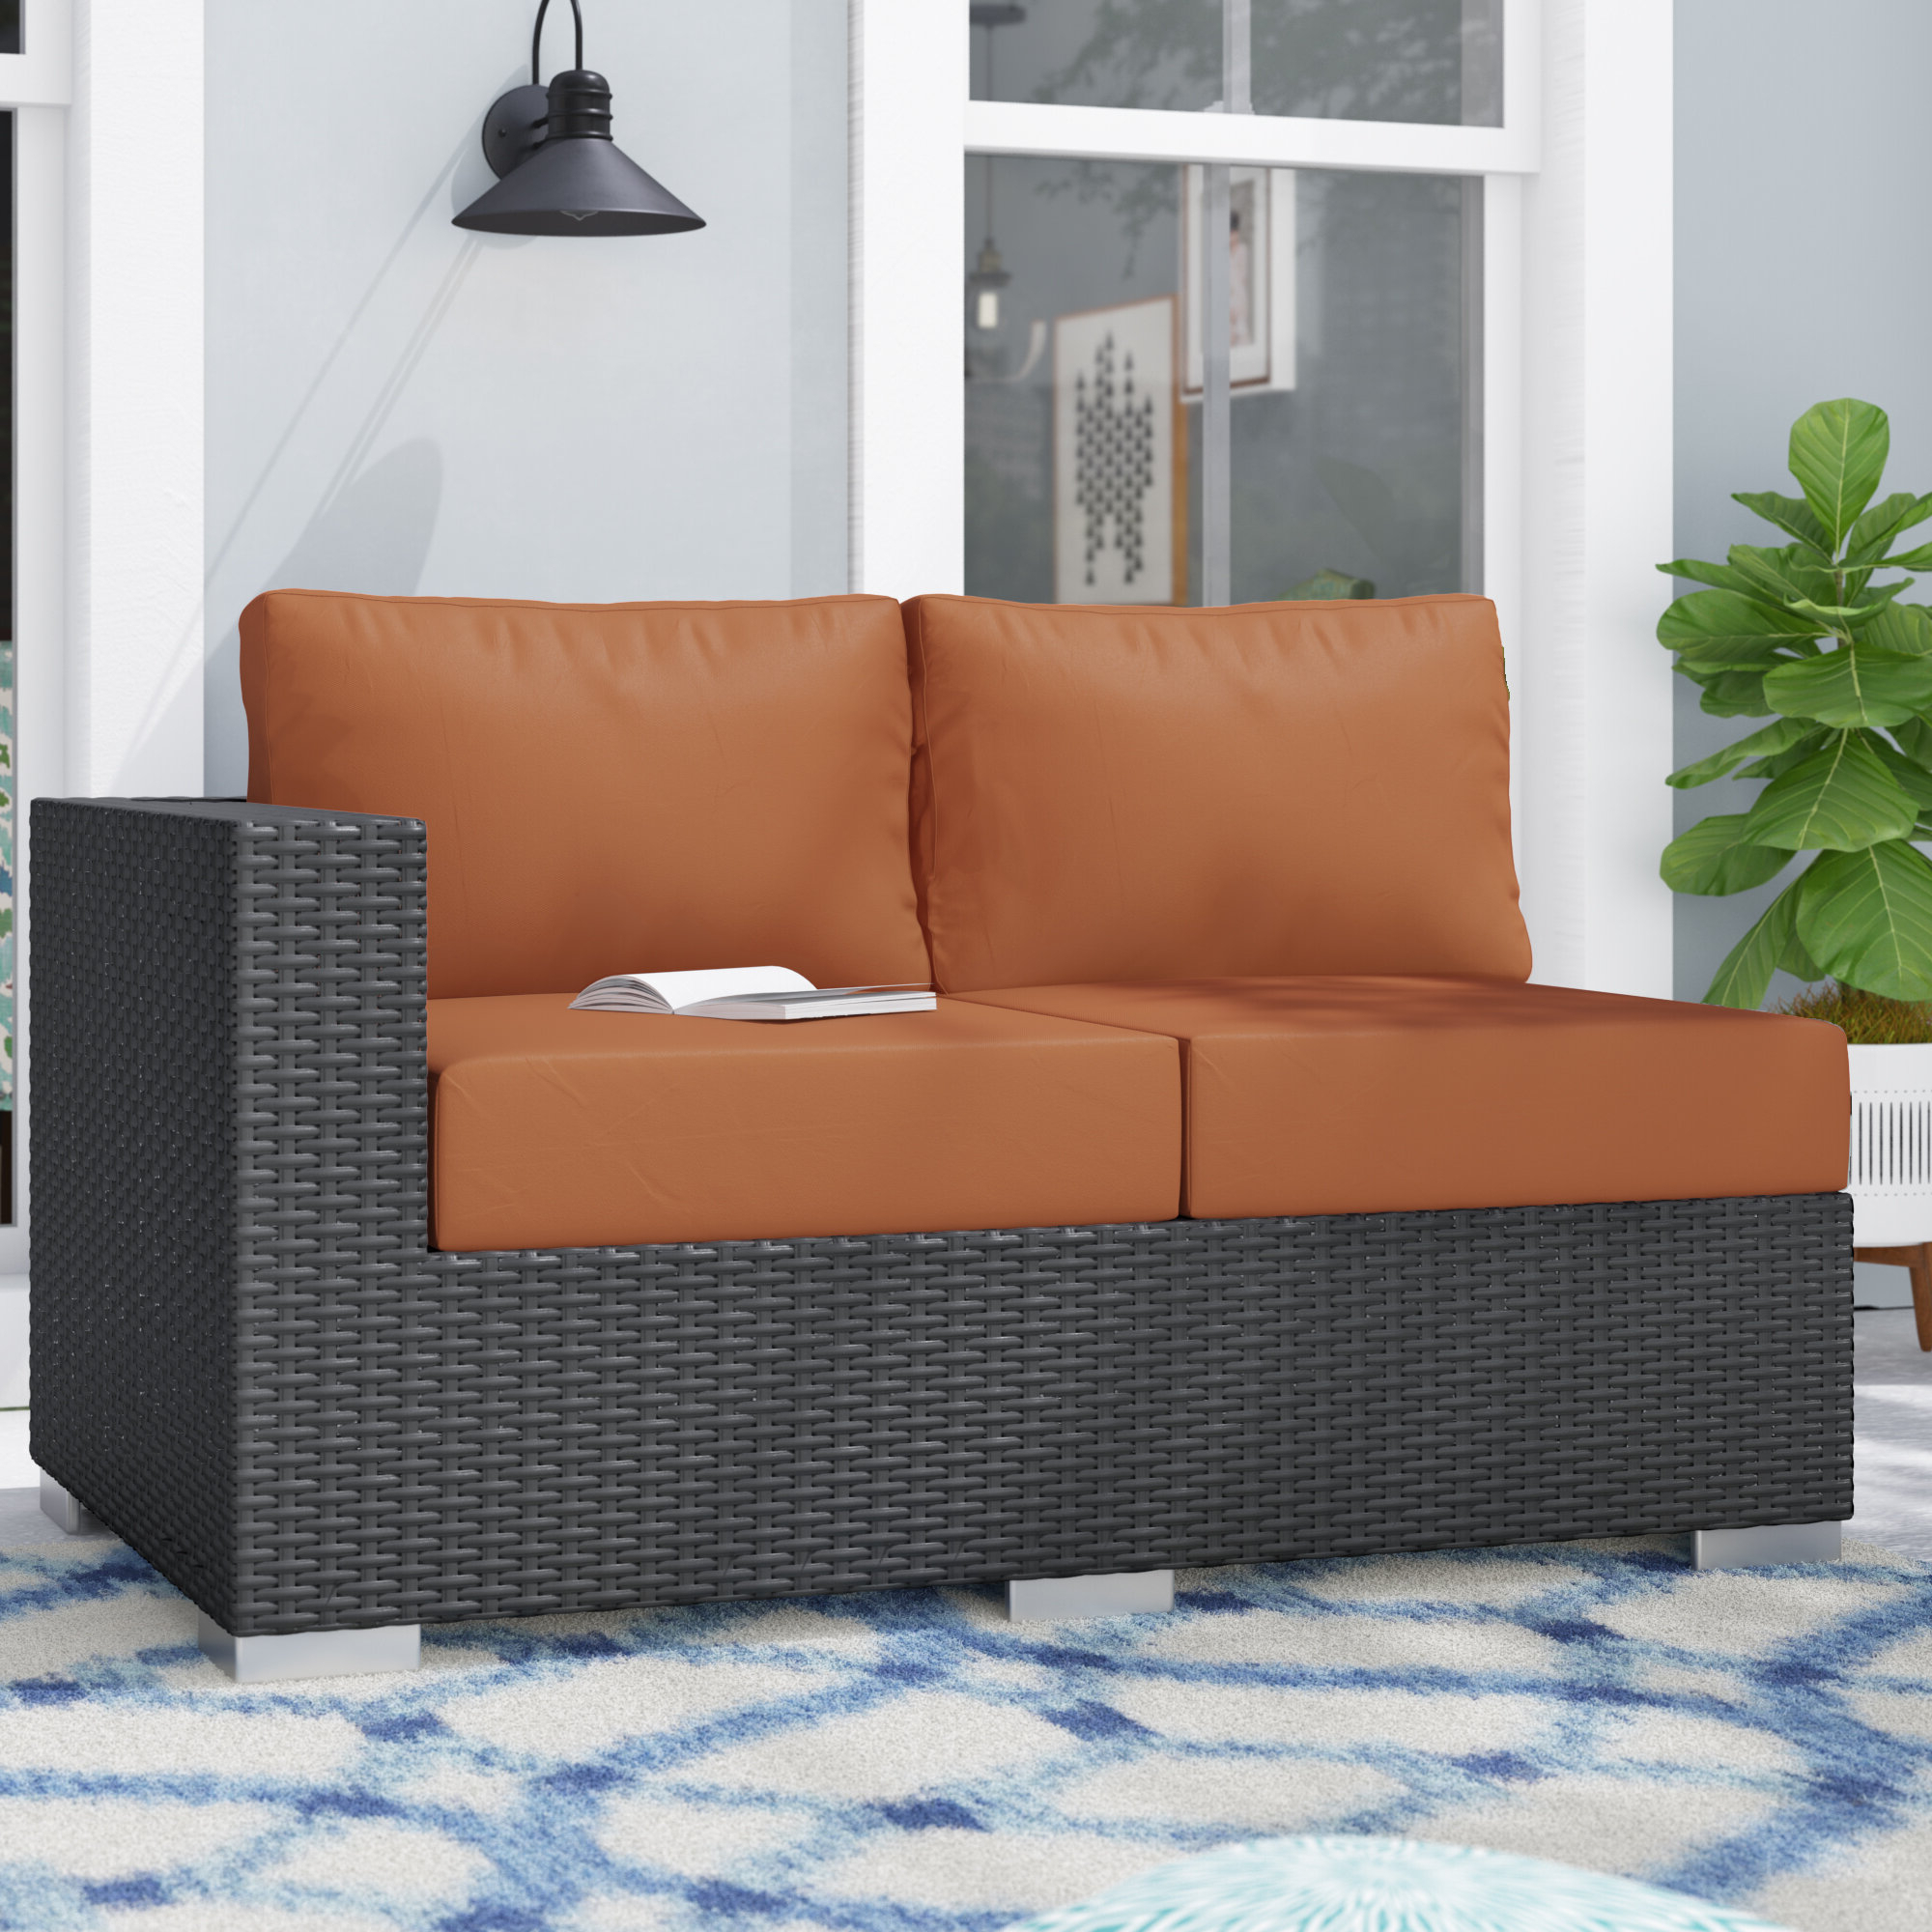 Tripp Right Arm Loveseat Sectional Piece With Cushions Regarding 2020 Tripp Loveseats With Cushions (View 4 of 20)